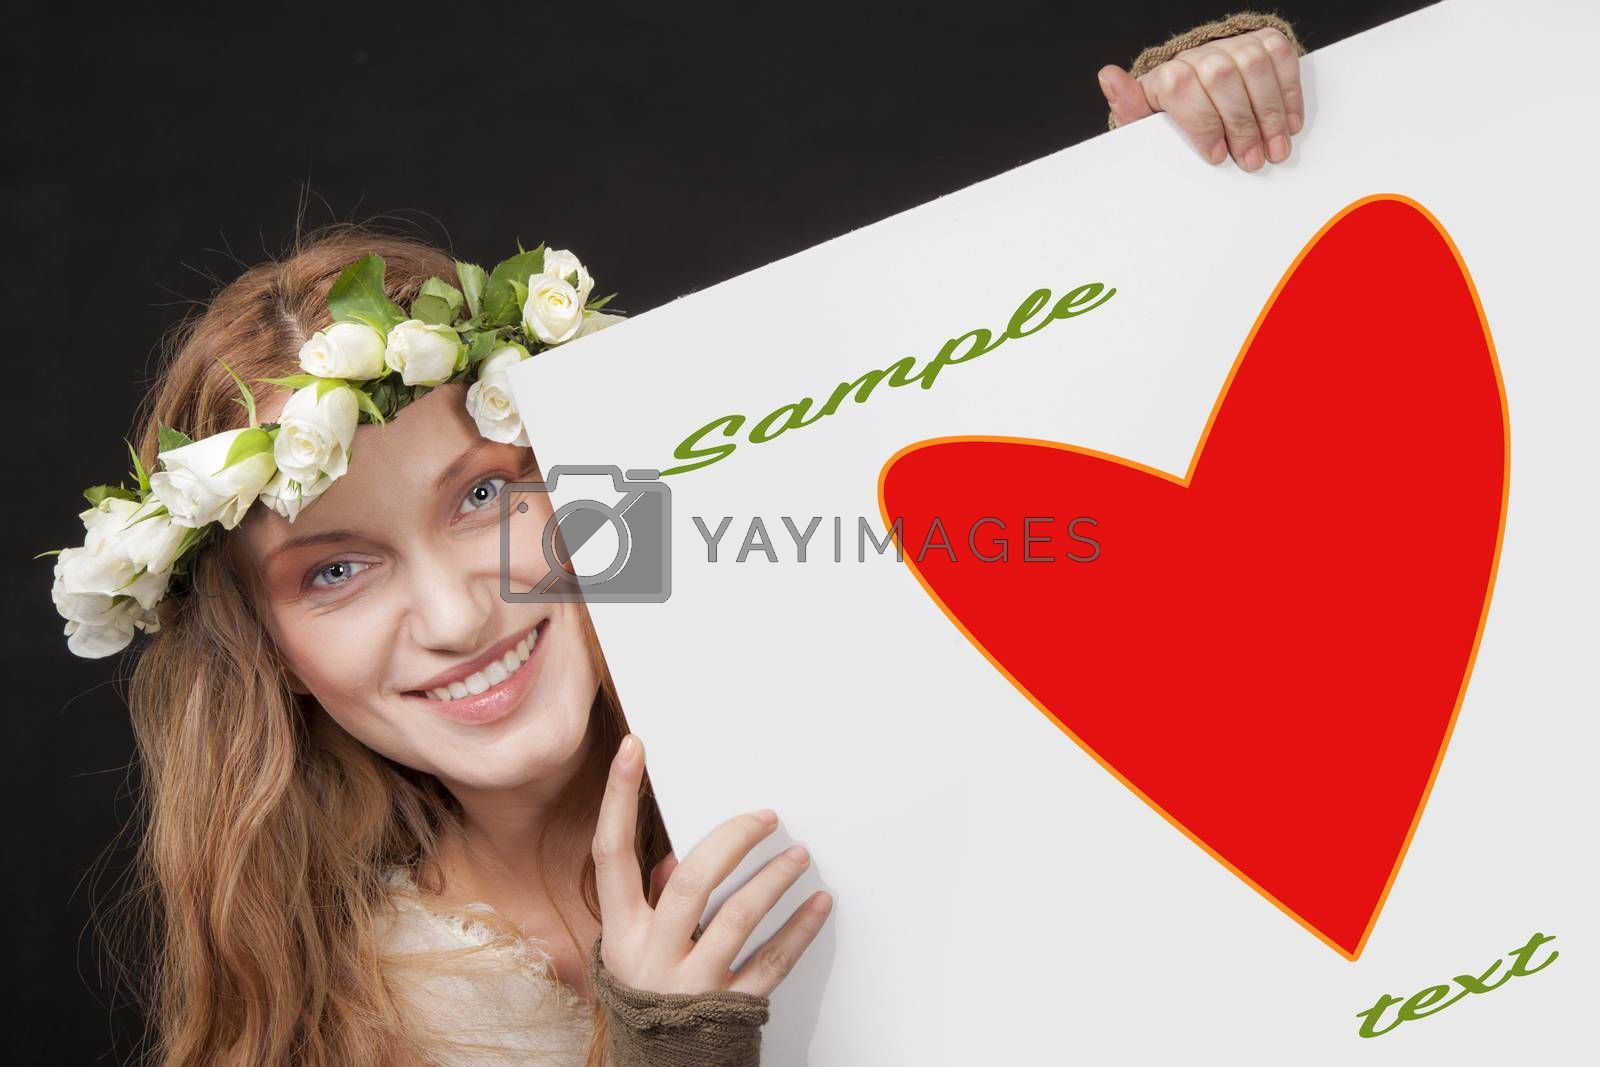 A smiling beautiful woman with white roses wreath in her long hair is holding a sign with red heart and a clipping path.